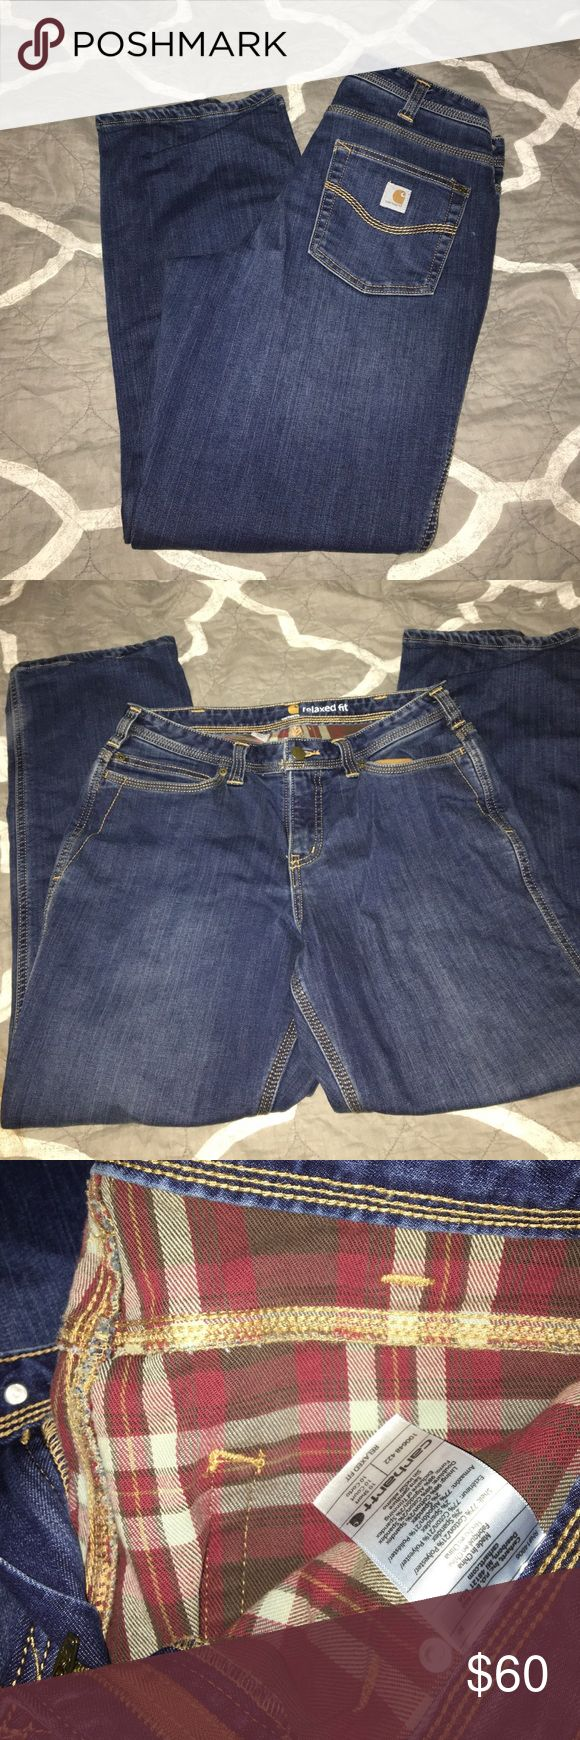 Carhartt insulated jeans Like new. Worn and washed once. Size 10 short. So warm. Relaxed fit. Carhartt Jeans Boot Cut